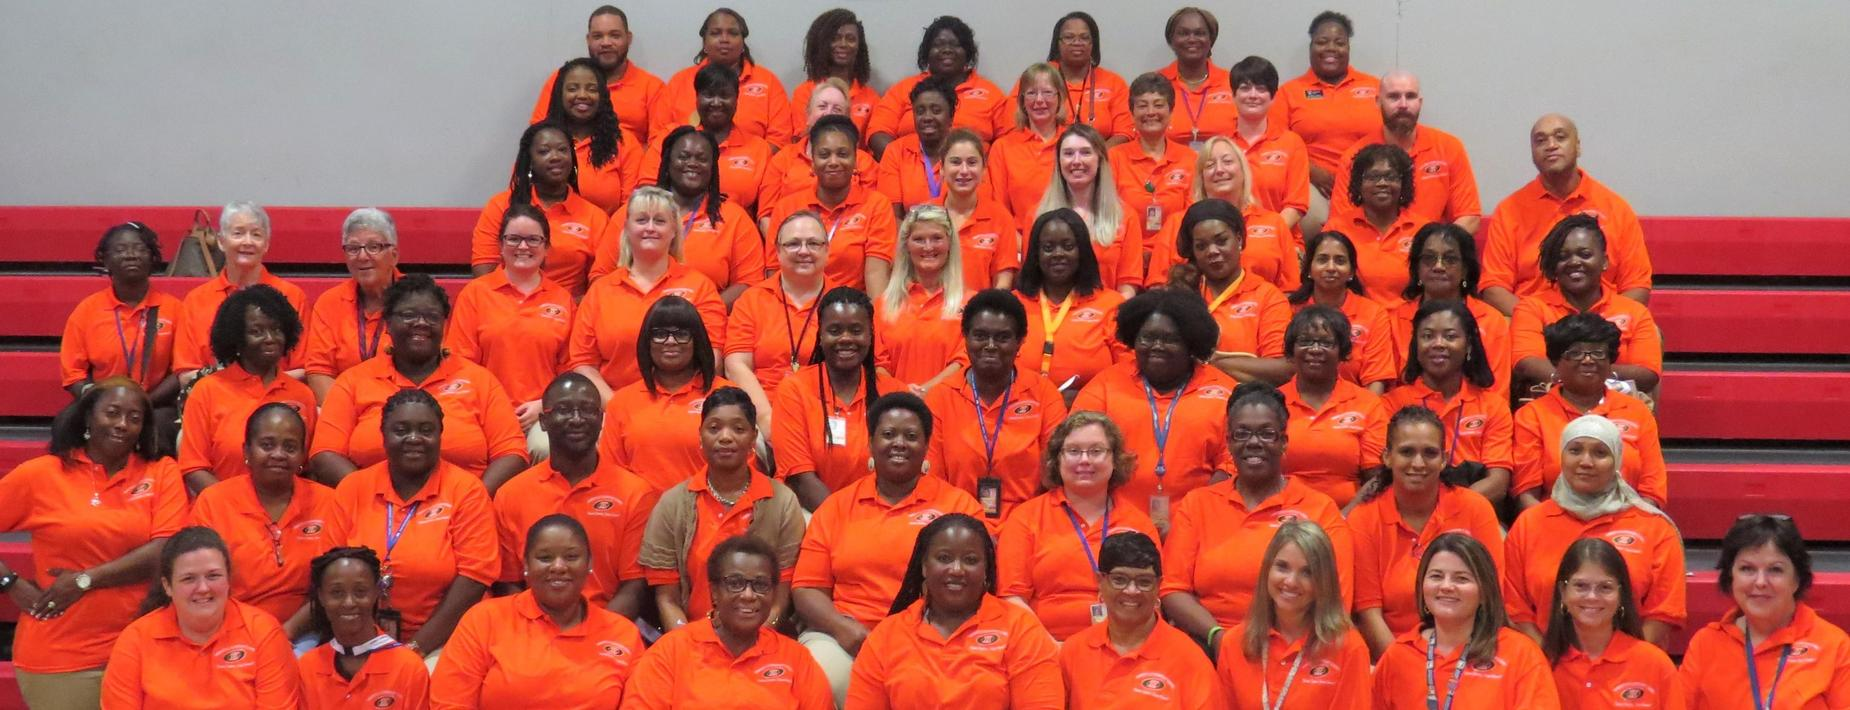 Hardeeville Elementary Staff photos